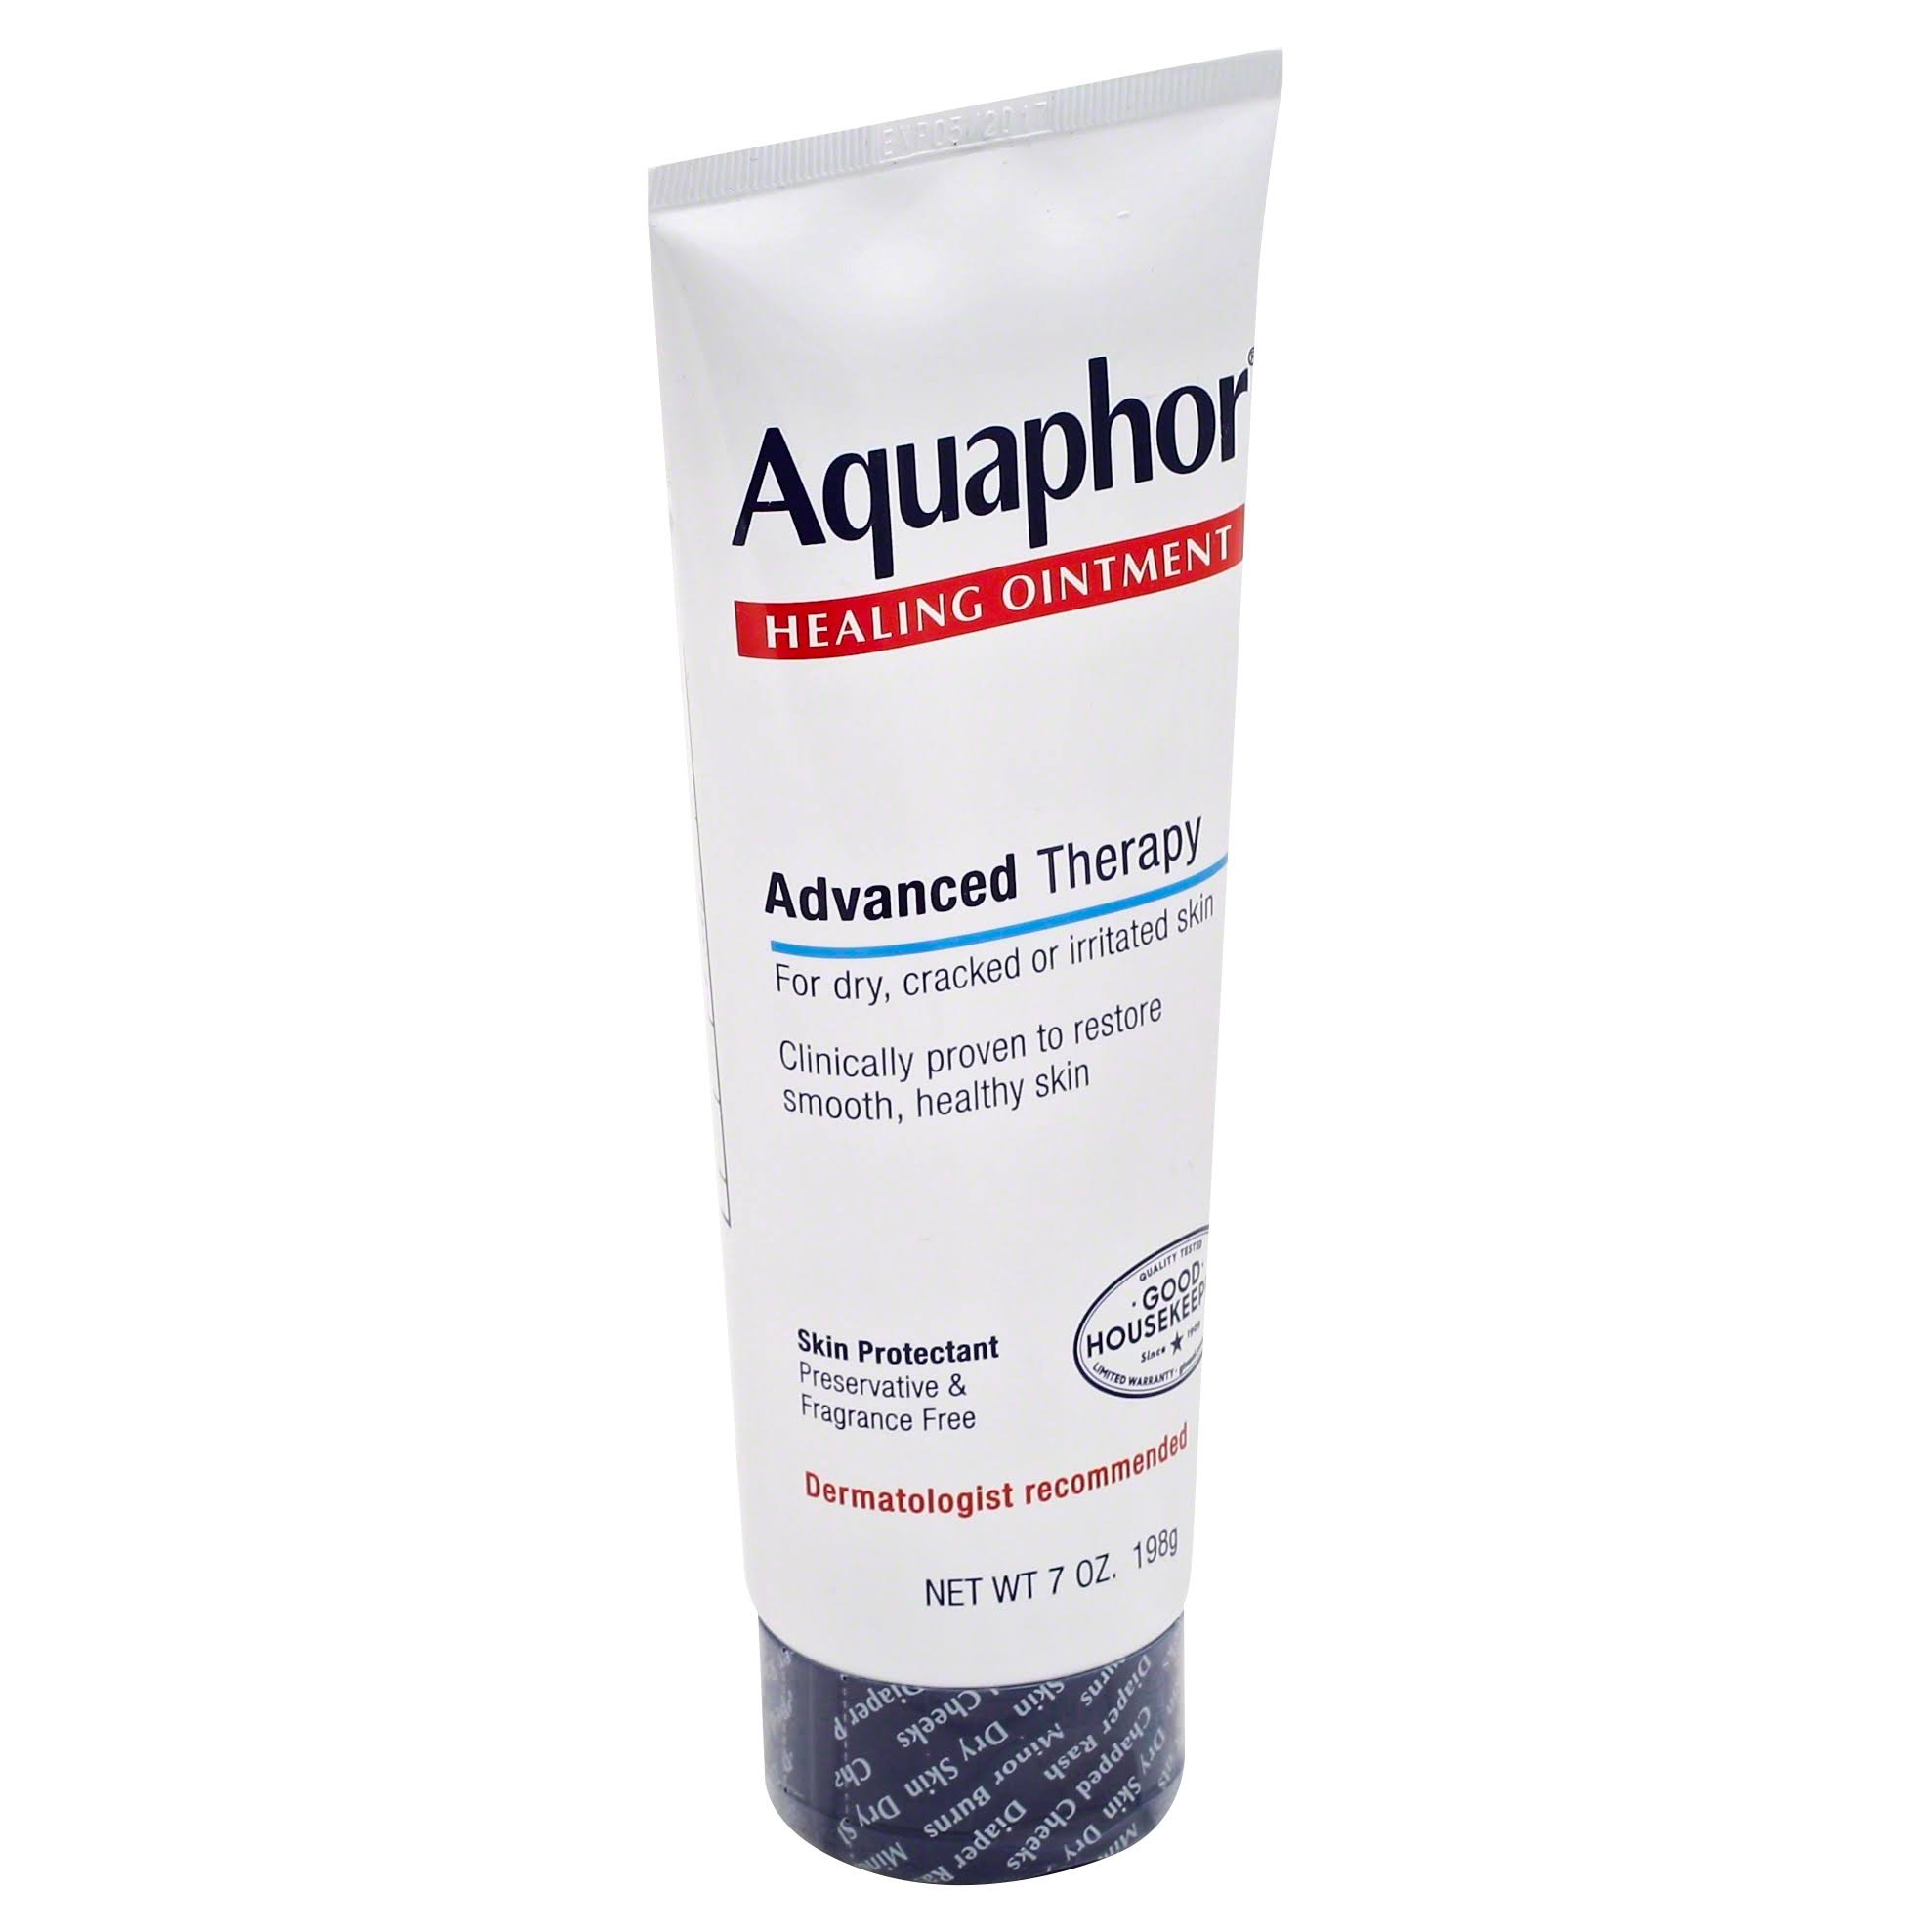 Aquaphor Advanced Therapy Healing Ointment - 7oz